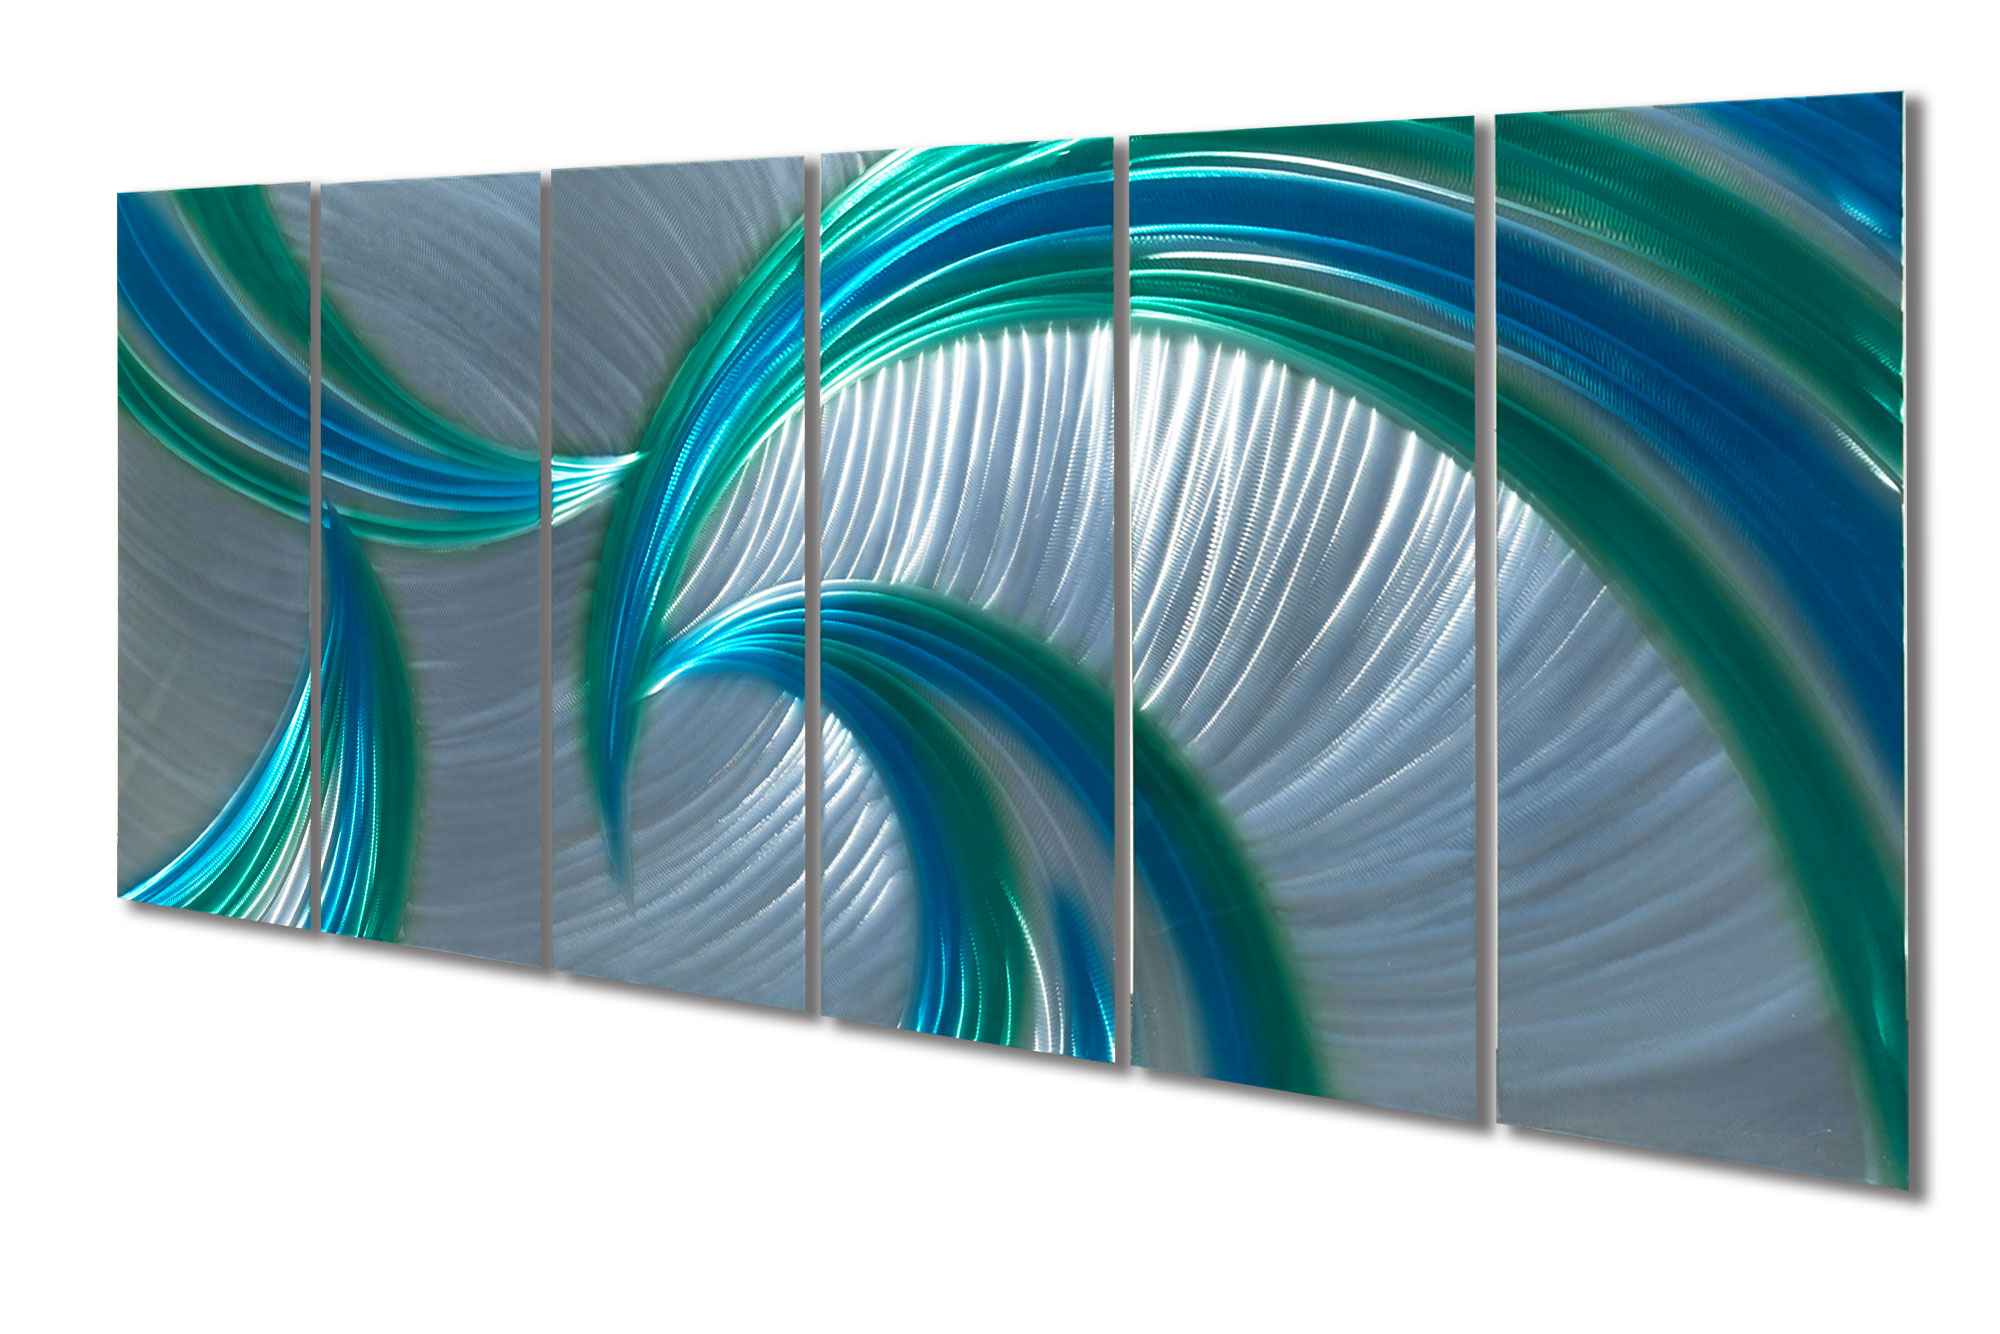 Blue Metal Wall Art Amusing Tempest Blue Green 48X125  Metal Wall Art Abstract Sculpture 2018